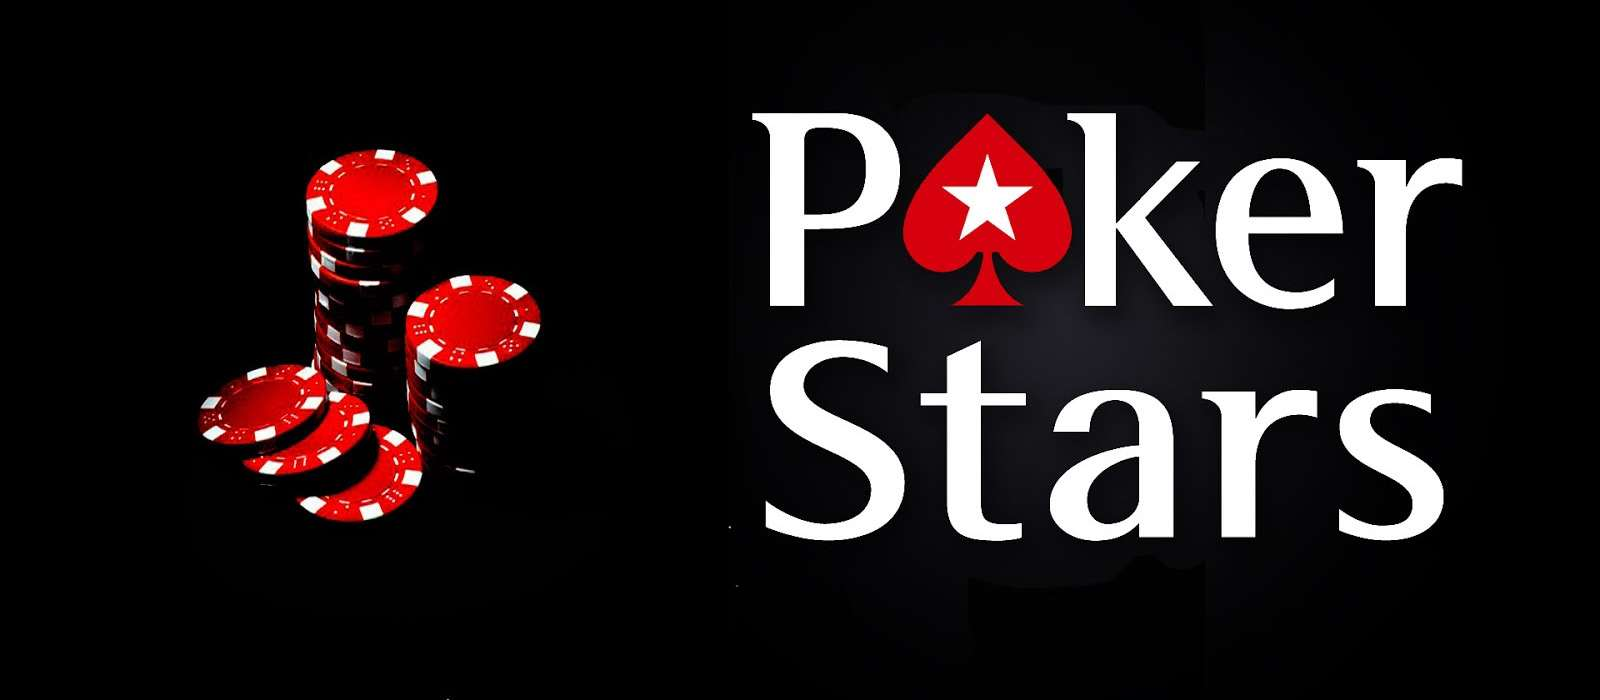 PokerStars offers the best software for online poker on the market